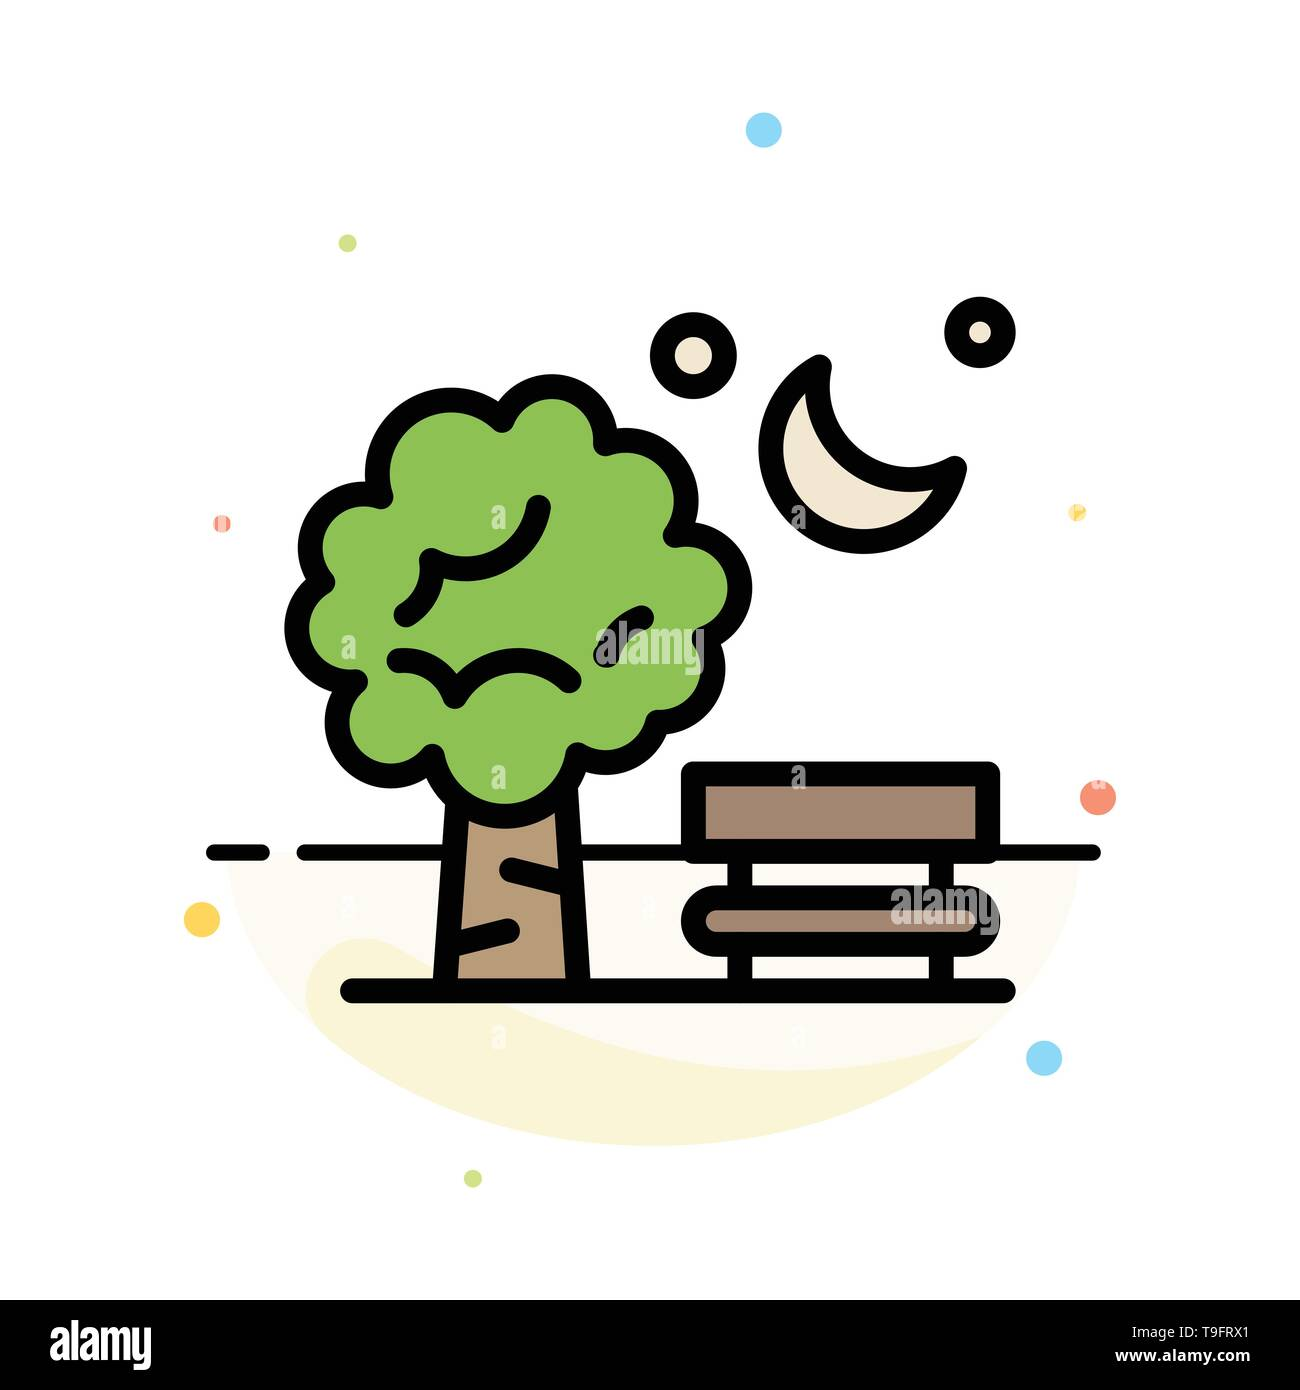 Bench, Chair, Park, Spring, Balloon Abstract Flat Color Icon Template - Stock Image